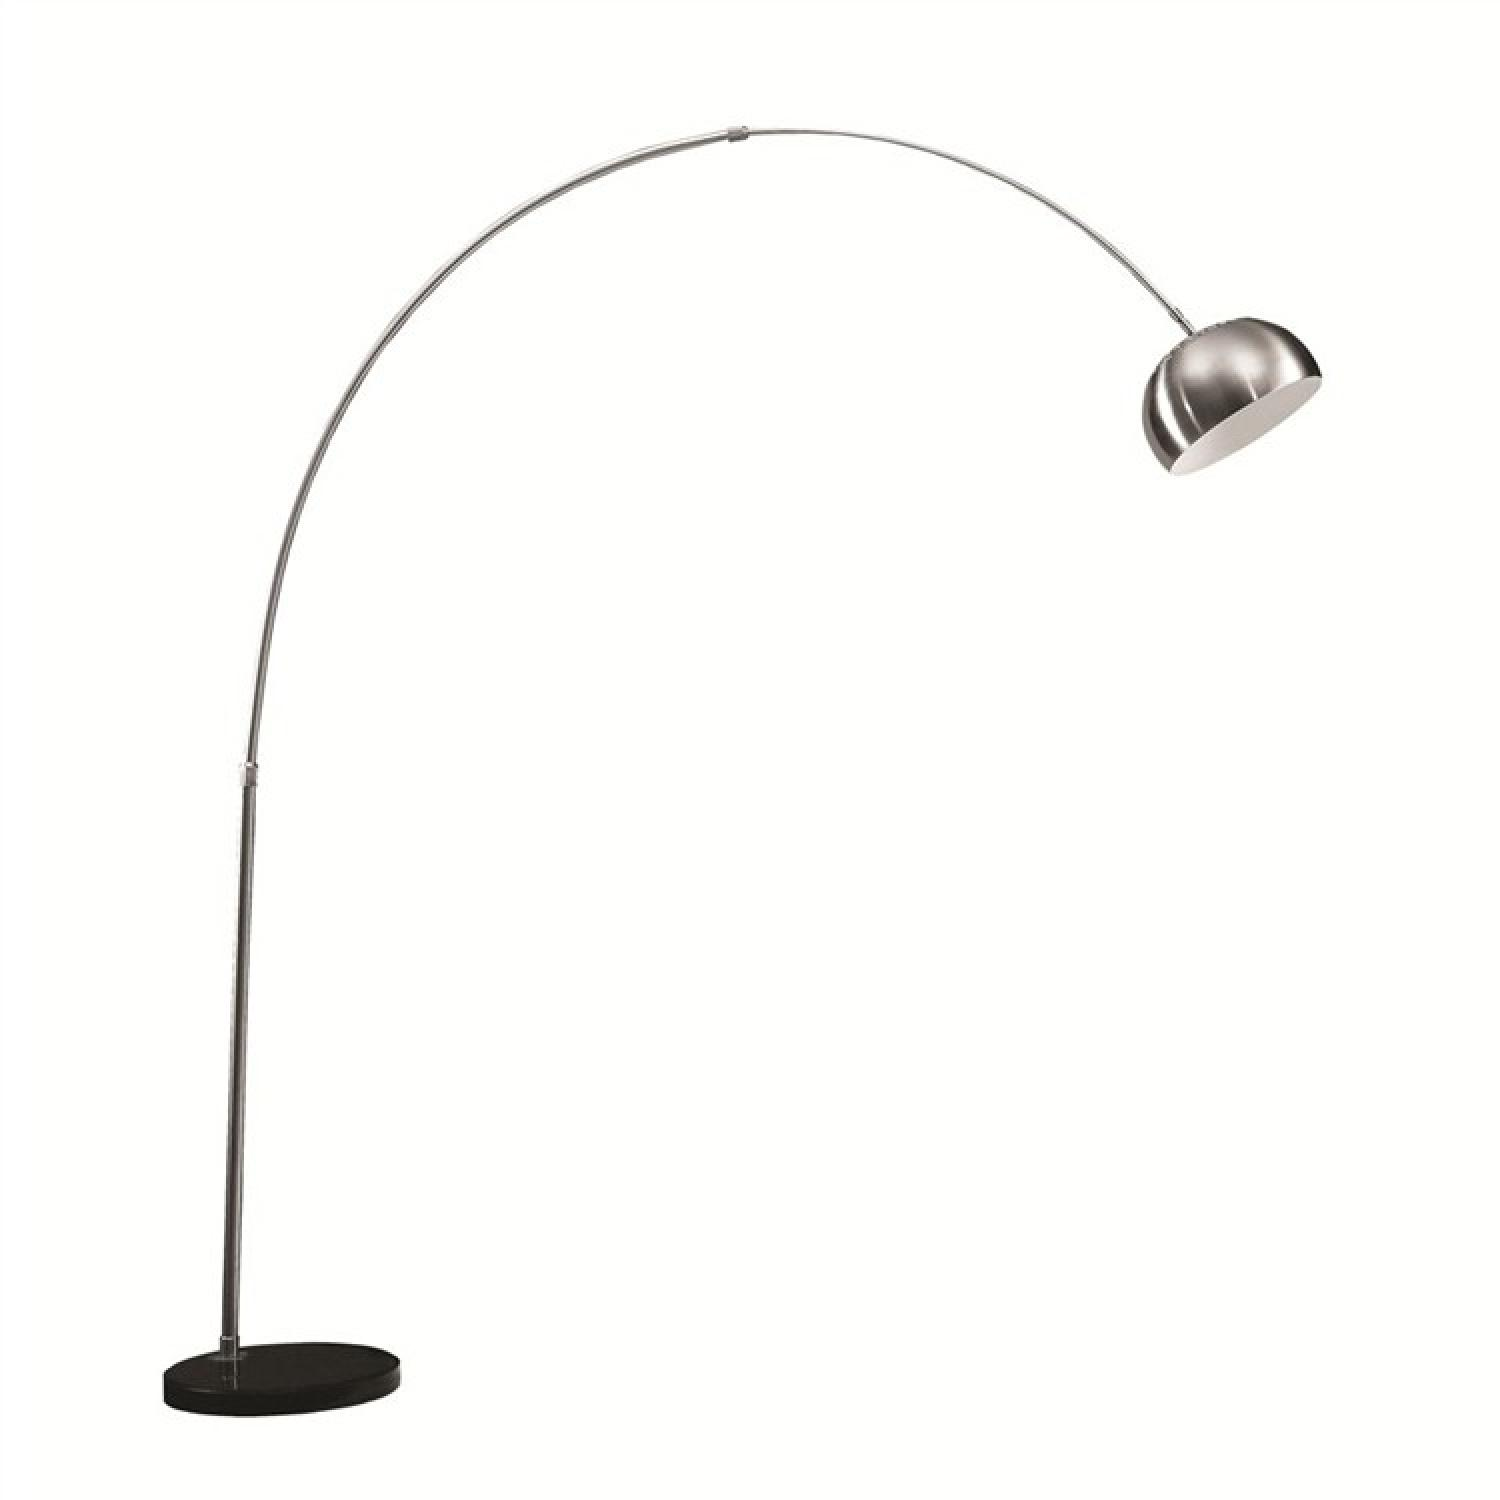 Modern Arch Lamp w/ Polished Stainless Steel Body & Round Bl - image-1